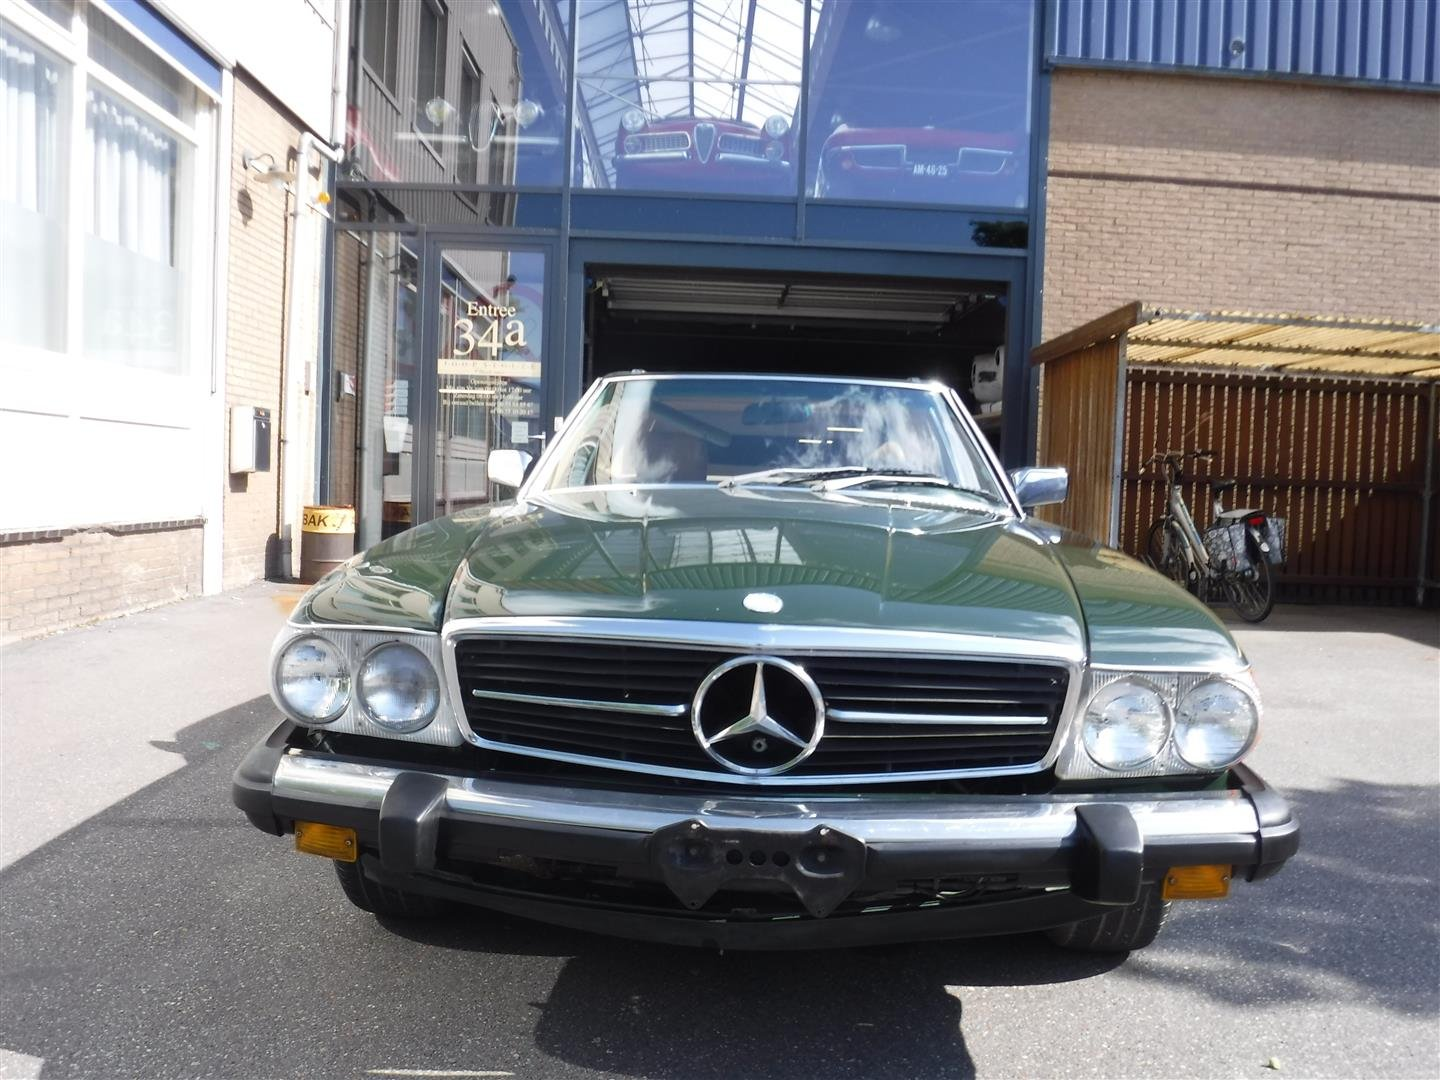 1983 Mercedes Benz 380SL roadster '83 For Sale (picture 6 of 6)